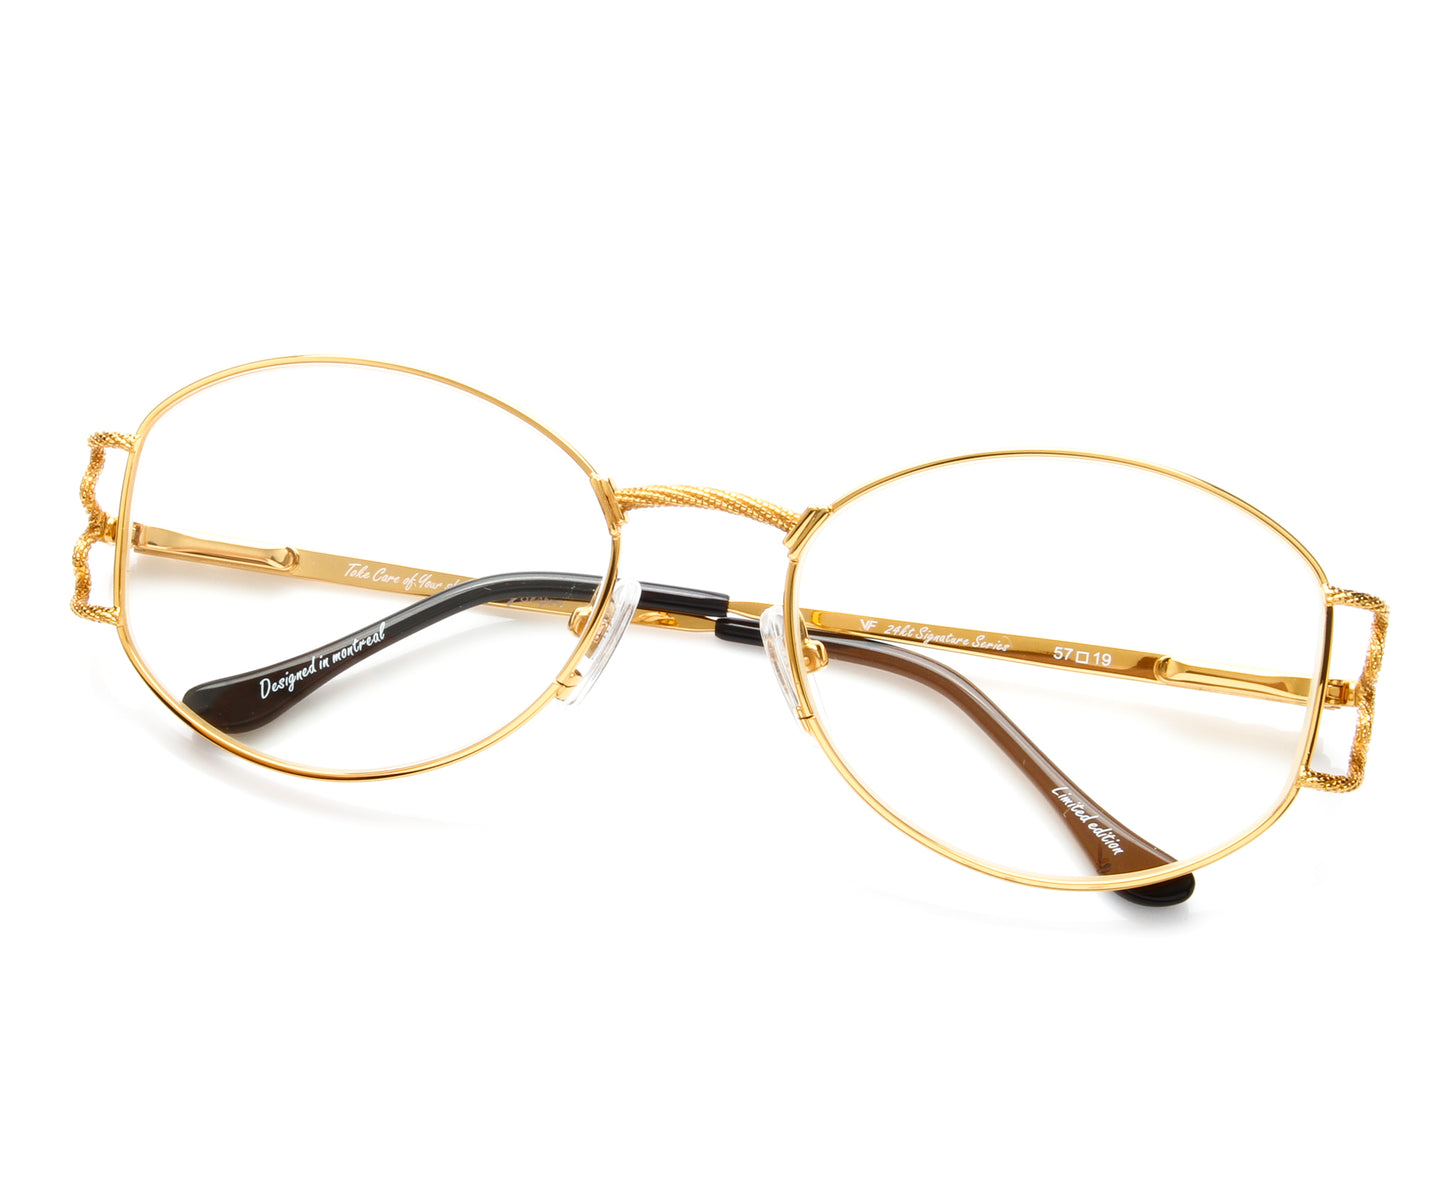 Ghostface Masterpiece 24KT Gold Signature Edition, VF Masterpiece , glasses frames, eyeglasses online, eyeglass frames, mens glasses, womens glasses, buy glasses online, designer eyeglasses, vintage sunglasses, retro sunglasses, vintage glasses, sunglass, eyeglass, glasses, lens, vintage frames company, vf